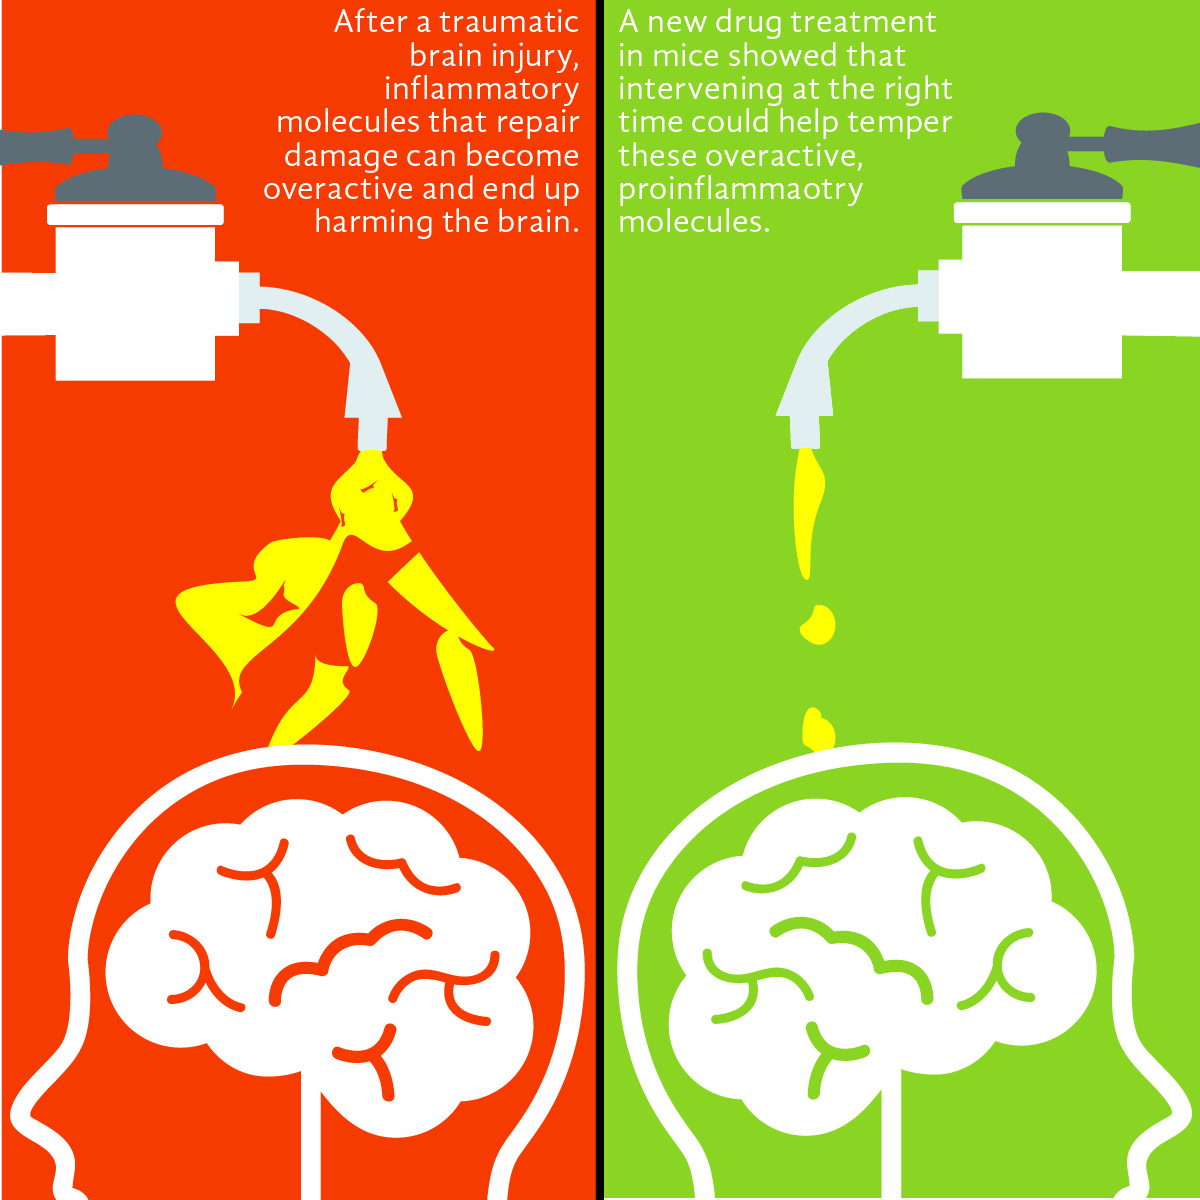 Drug intervention for brain injury, dementia link may be effective